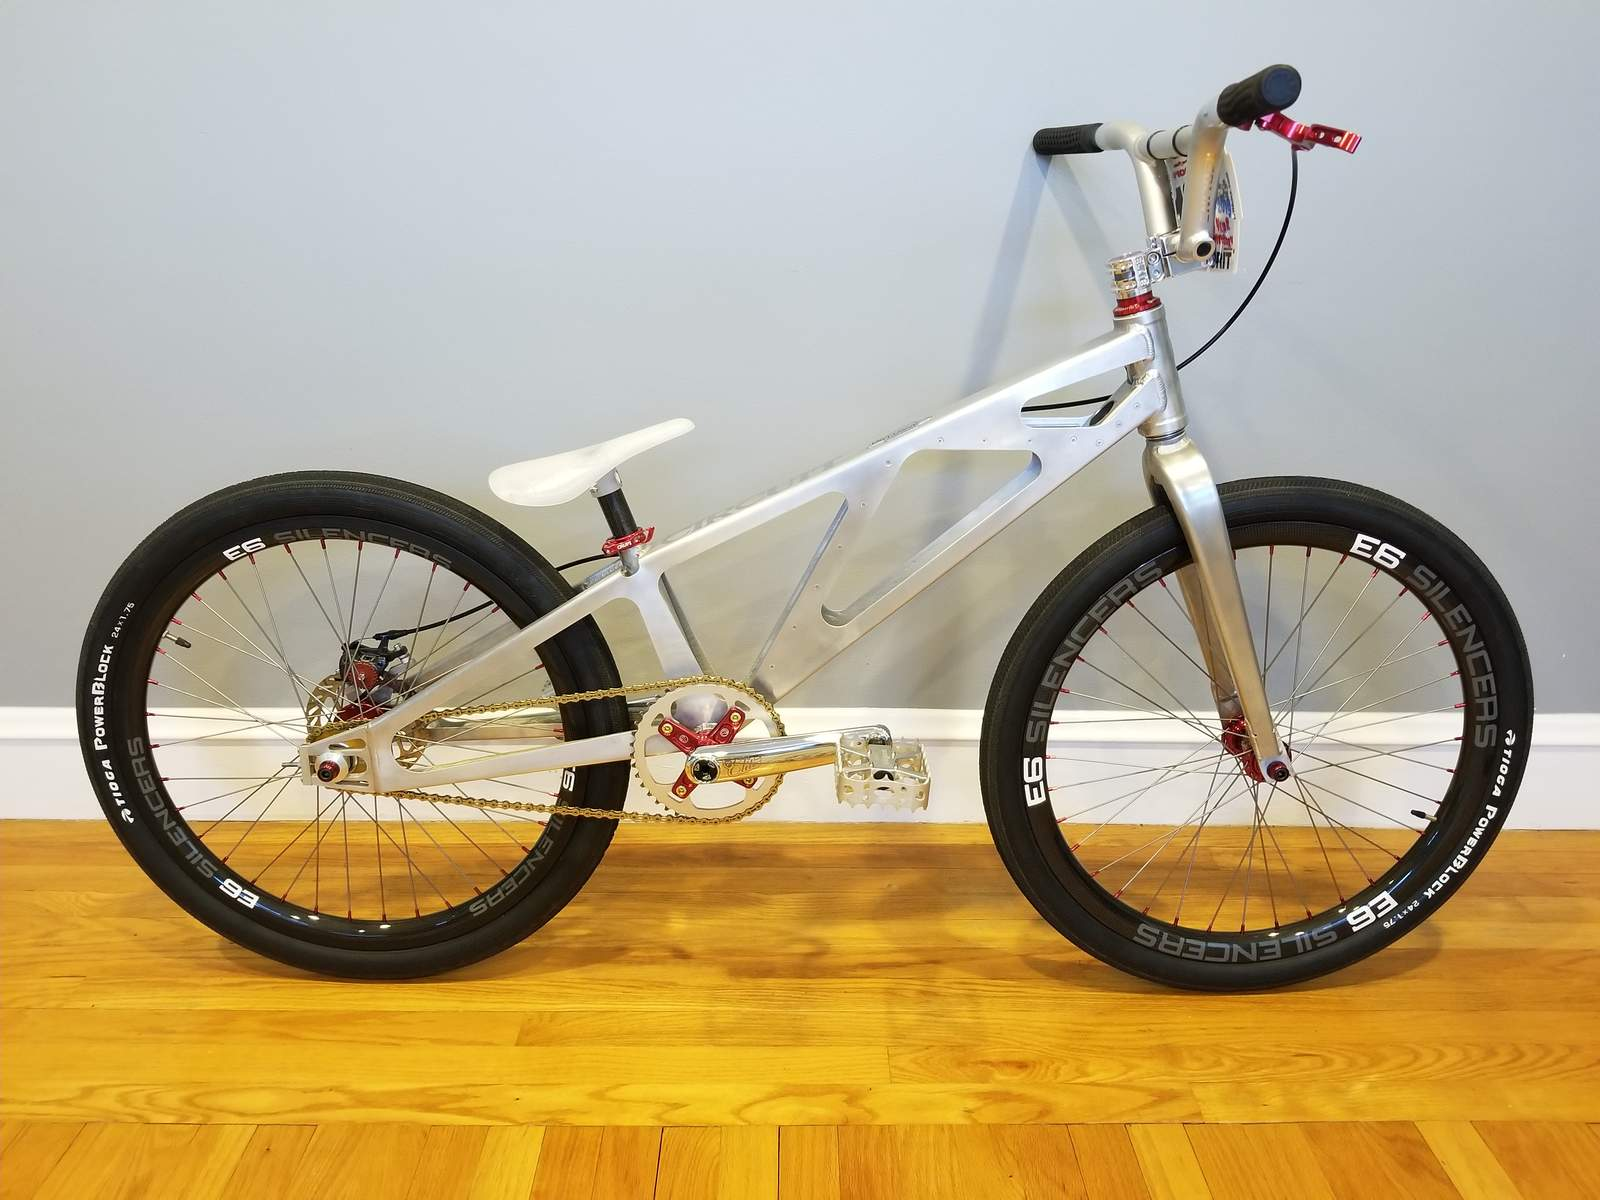 http://uploads.bmxmuseum.com/user-images/261873/20200120_1610125e5044d131.jpg